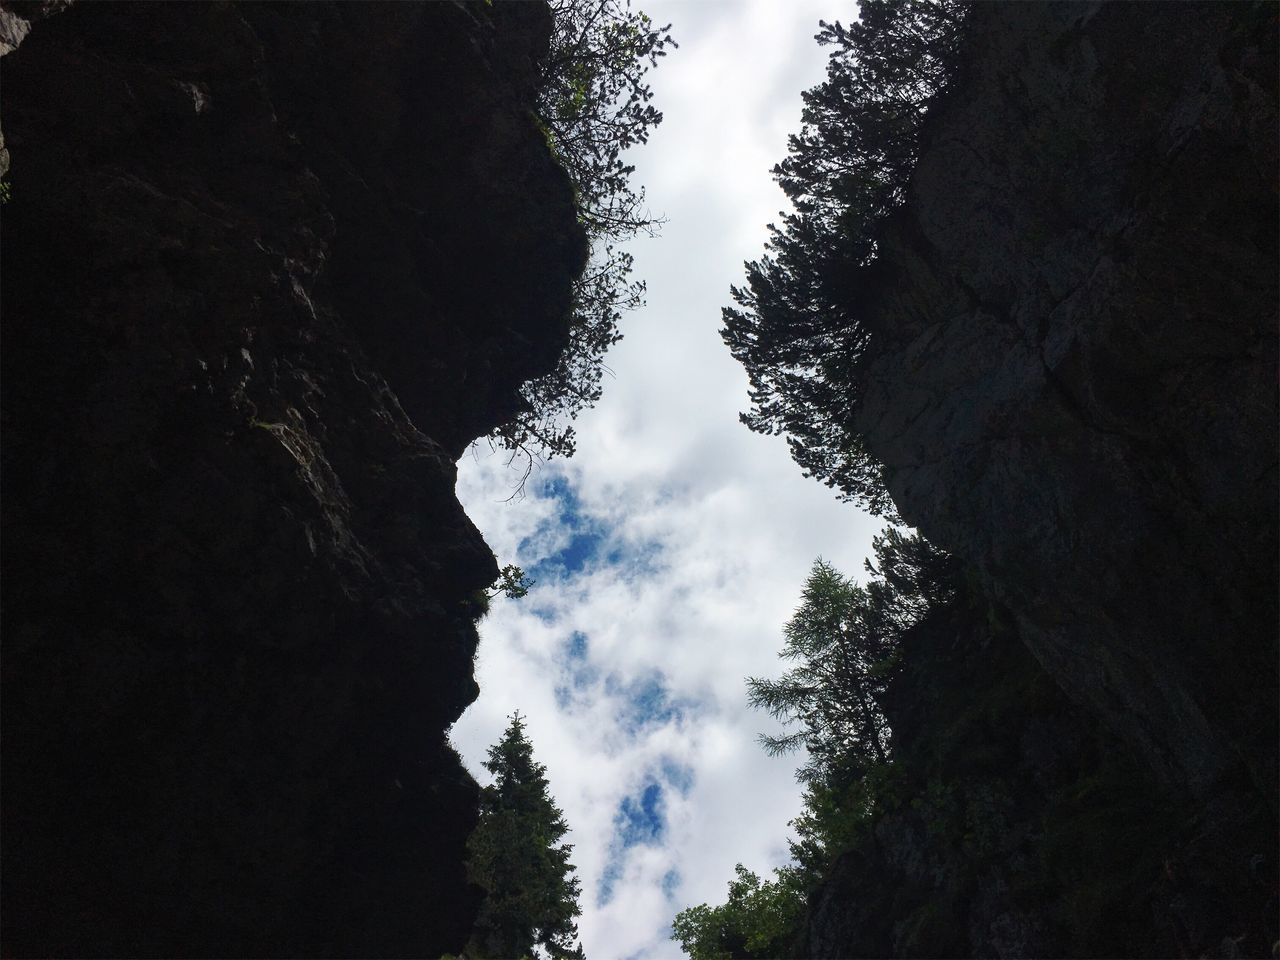 nature, tree, cloud - sky, beauty in nature, sky, day, no people, low angle view, scenics, outdoors, tranquility, forest, growth, mountain